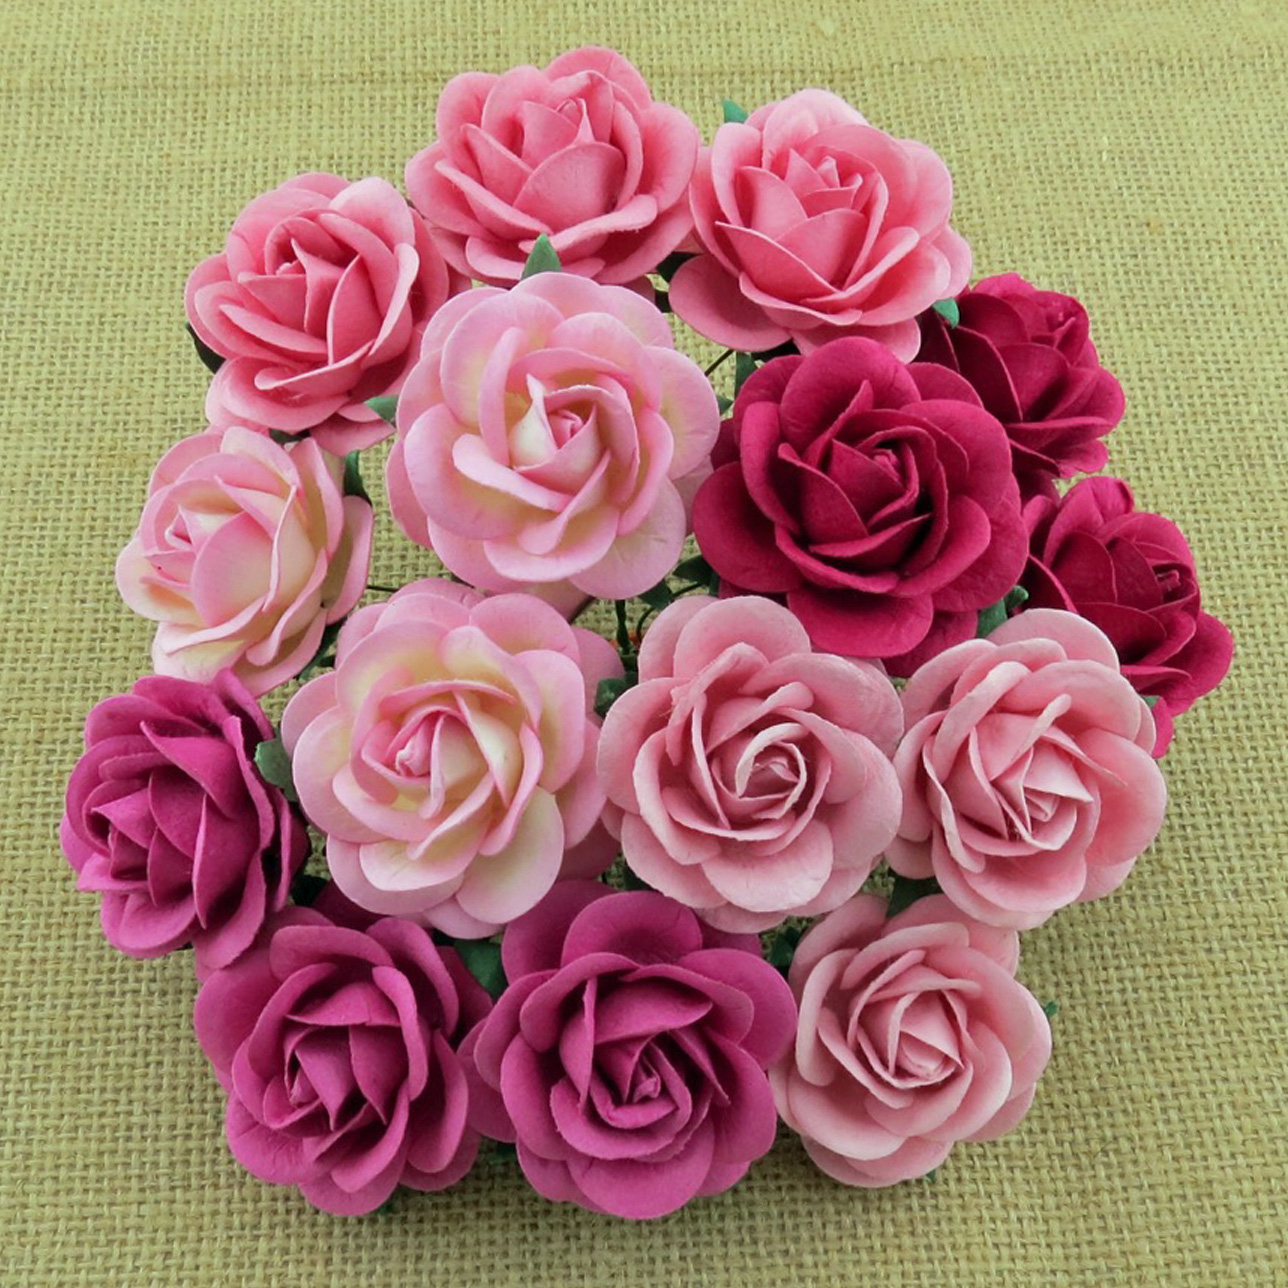 50 MIXED PINK MULBERRY PAPER TRELLIS ROSES - 5 COLOR